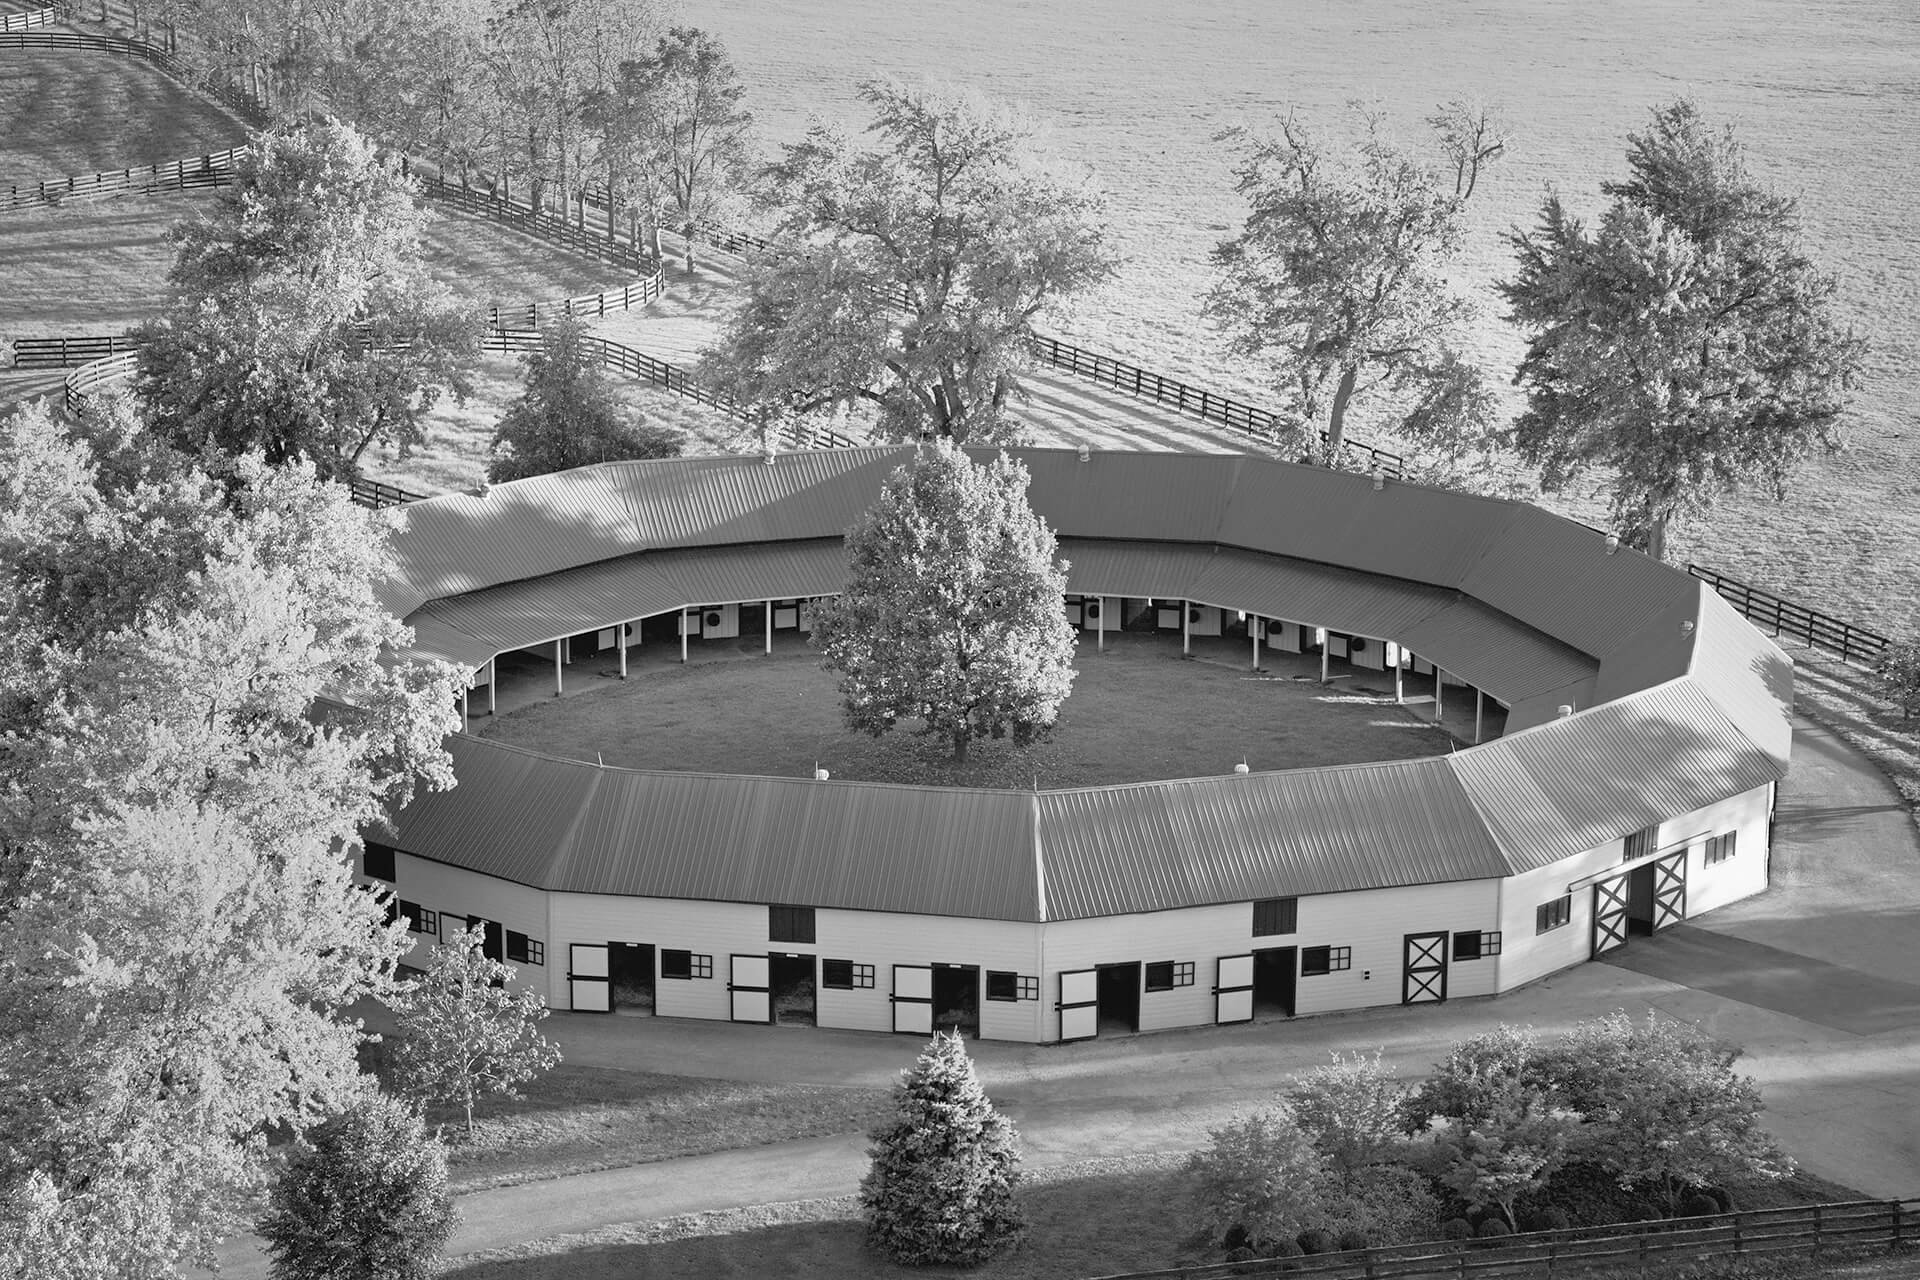 The iconic circular stable that houses several champion sires and broodmares.